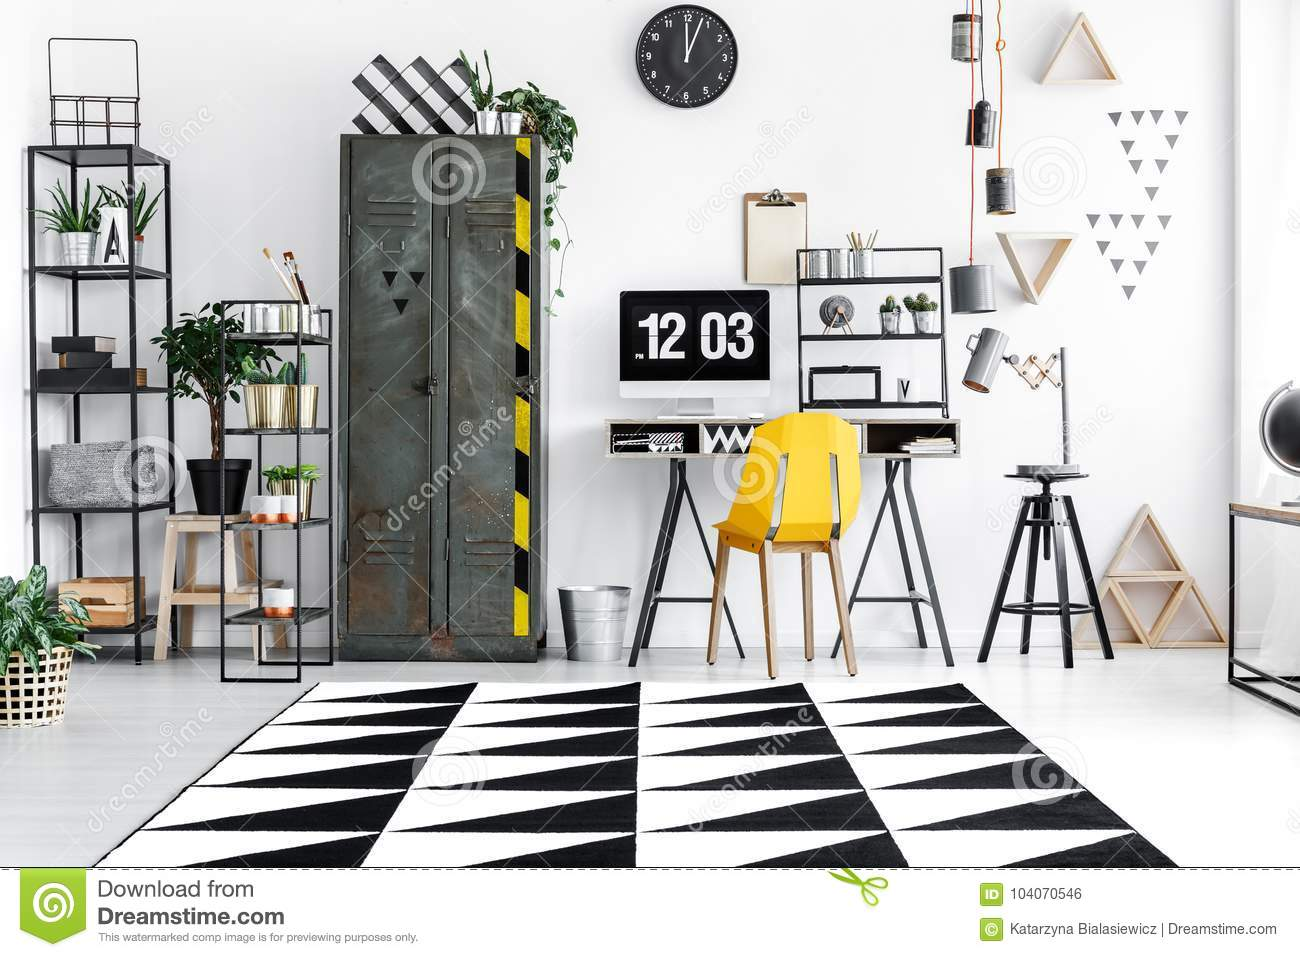 Room With Industrial Furniture Stock Photo   Image of pattern ...